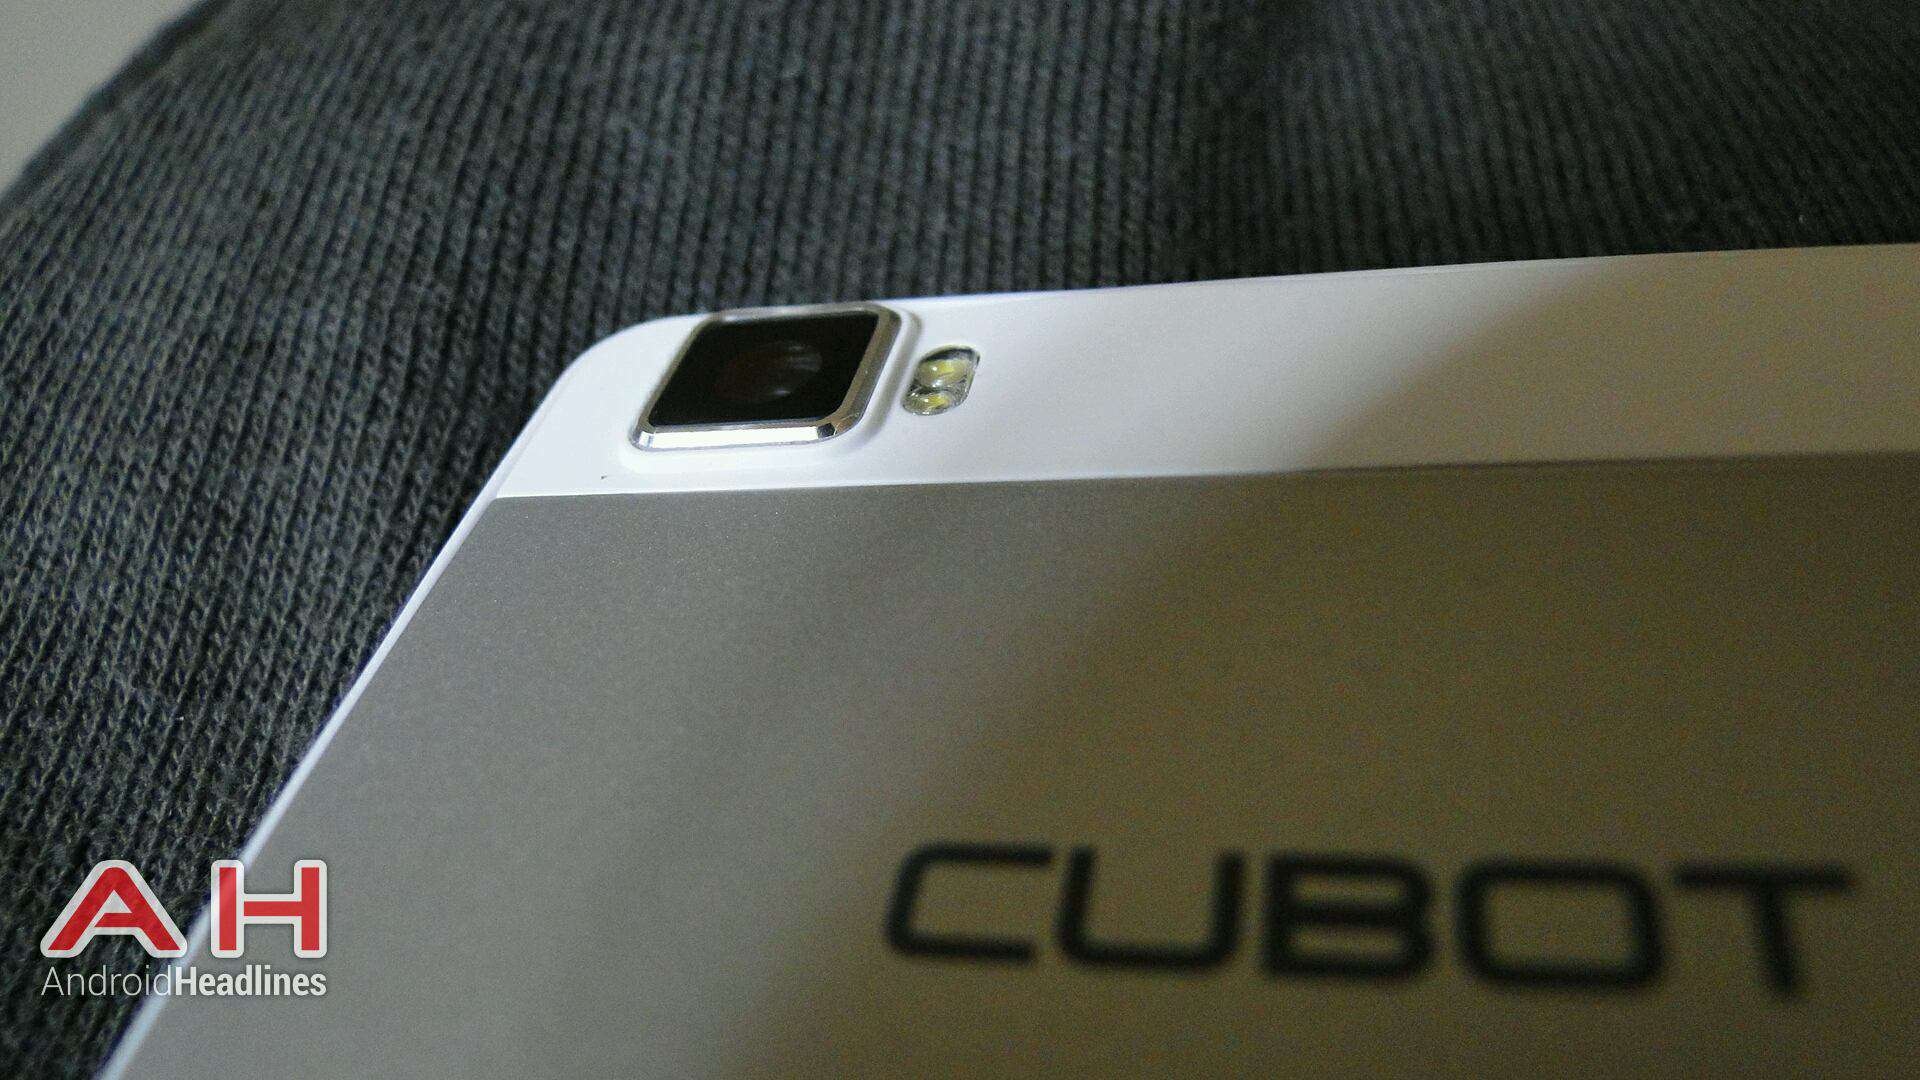 AH Cubot X17 4G rear camera logo